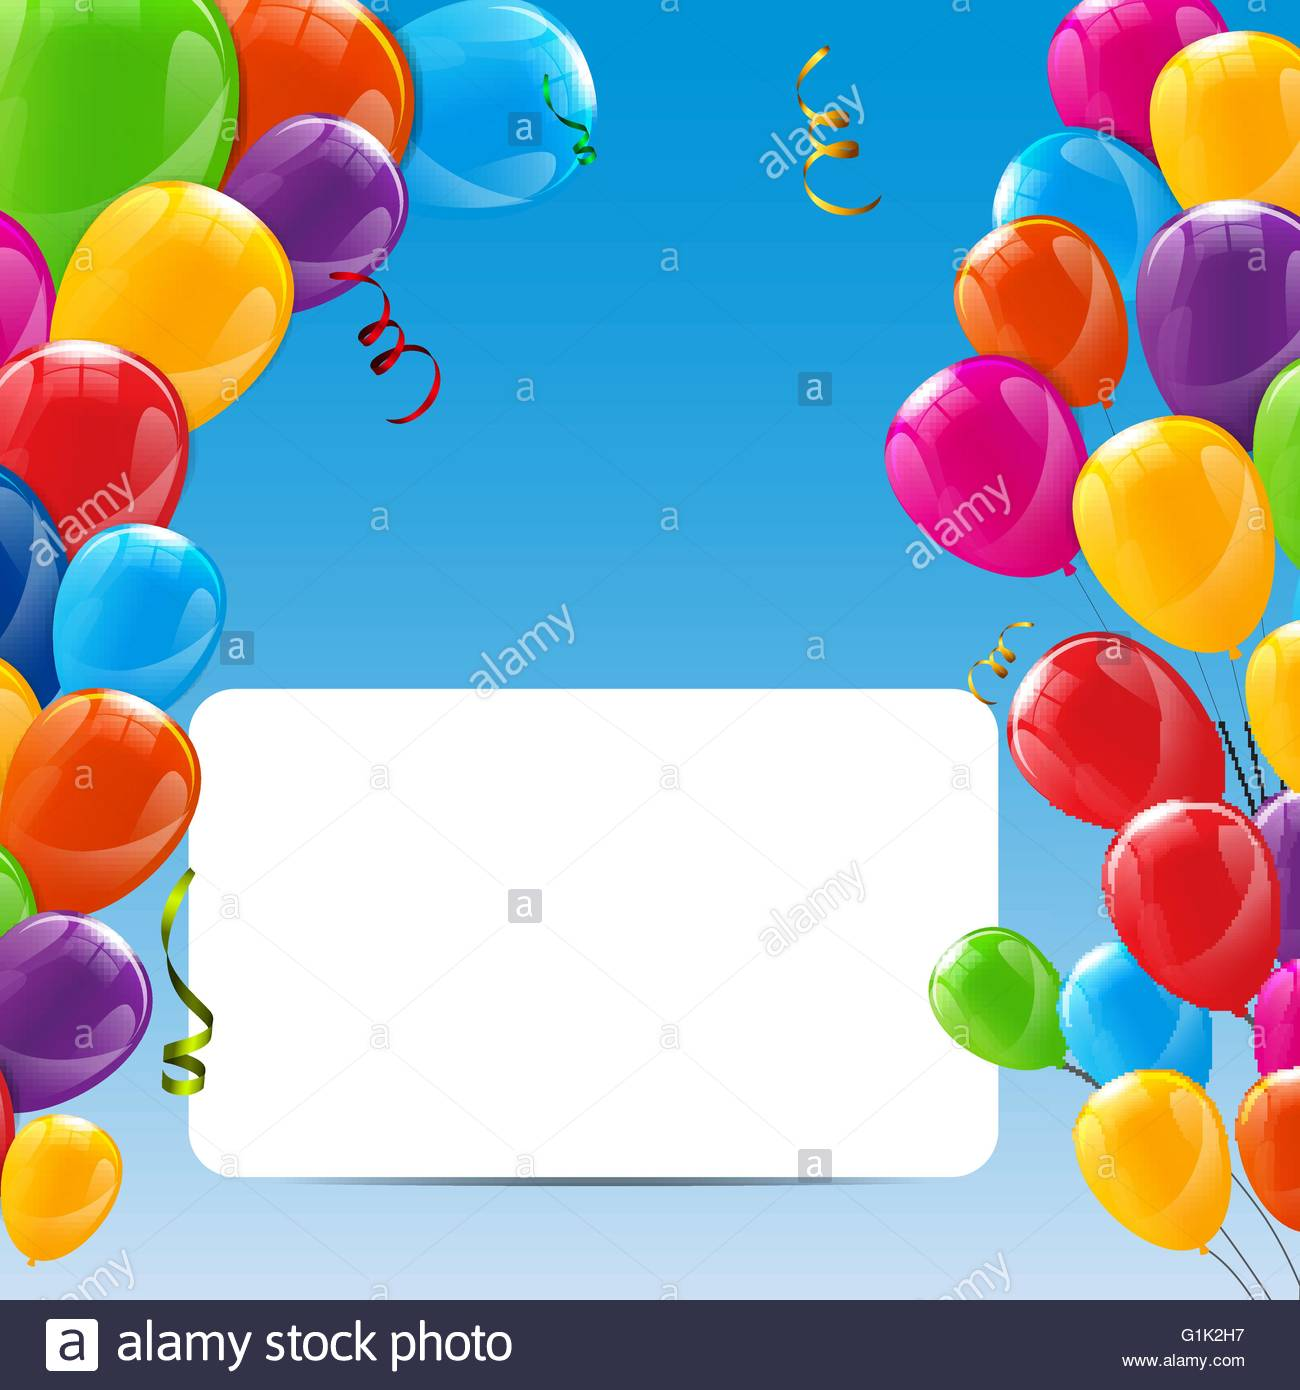 birthday banner background images ; color-glossy-happy-birthday-balloons-banner-background-G1K2H7